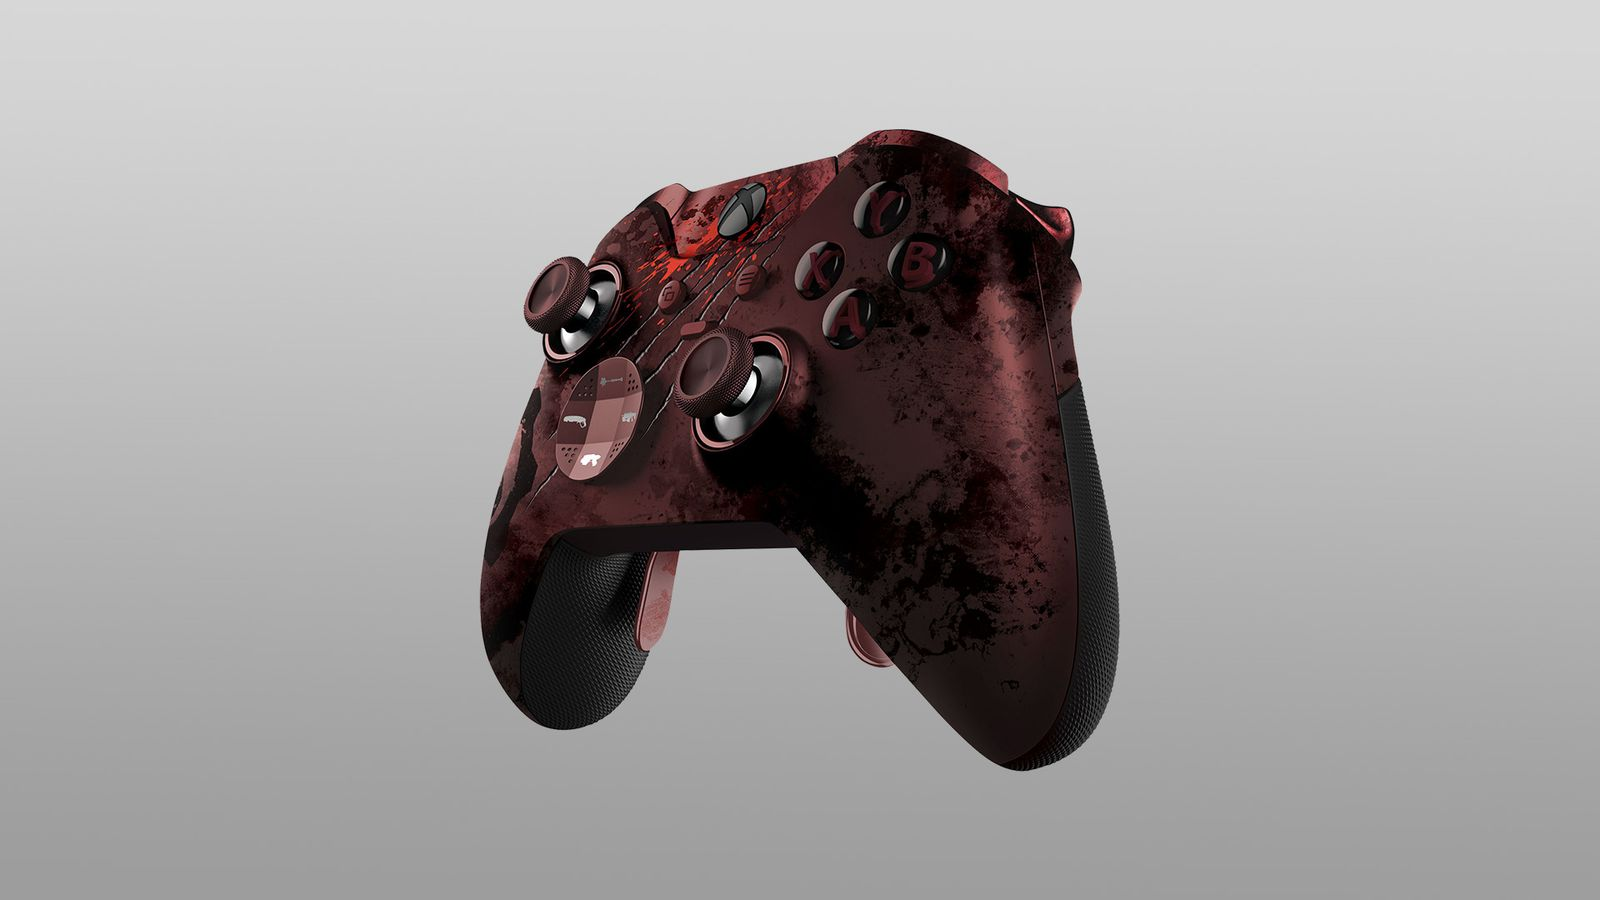 Gears Of War 4s Xbox One Elite Controller Up For Pre Order At GameStop Polygon